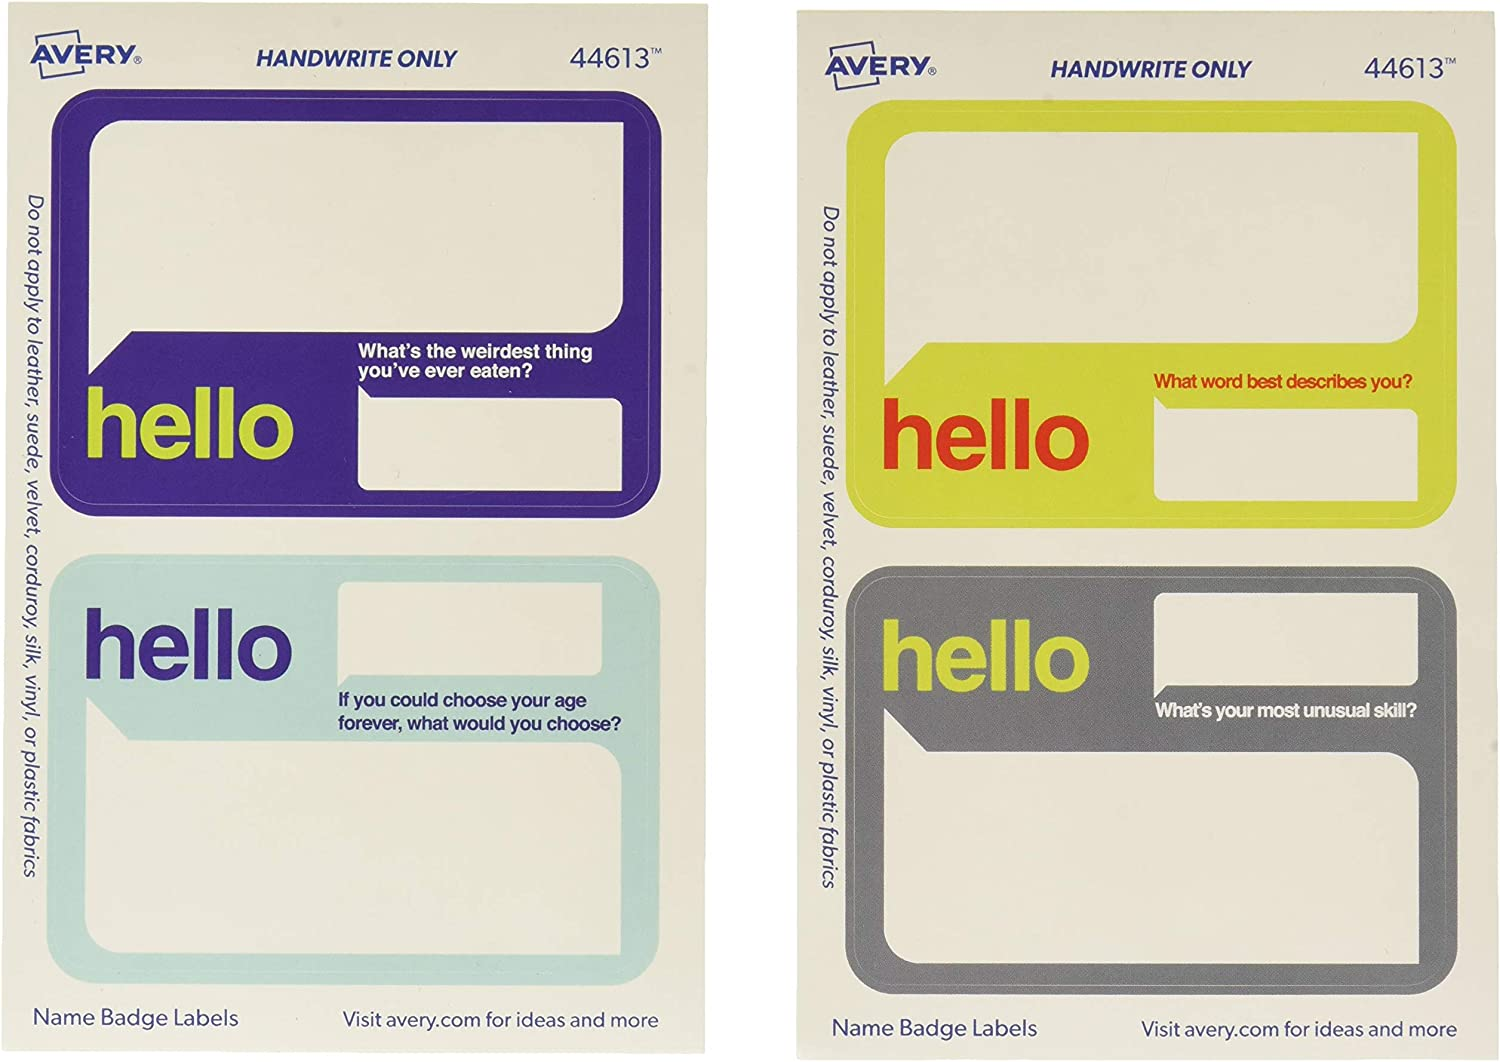 Avery Premium Event Name Tags, Ice Breaker Questions, No Lift No Curl, 36 Handwriteable Name Stickers